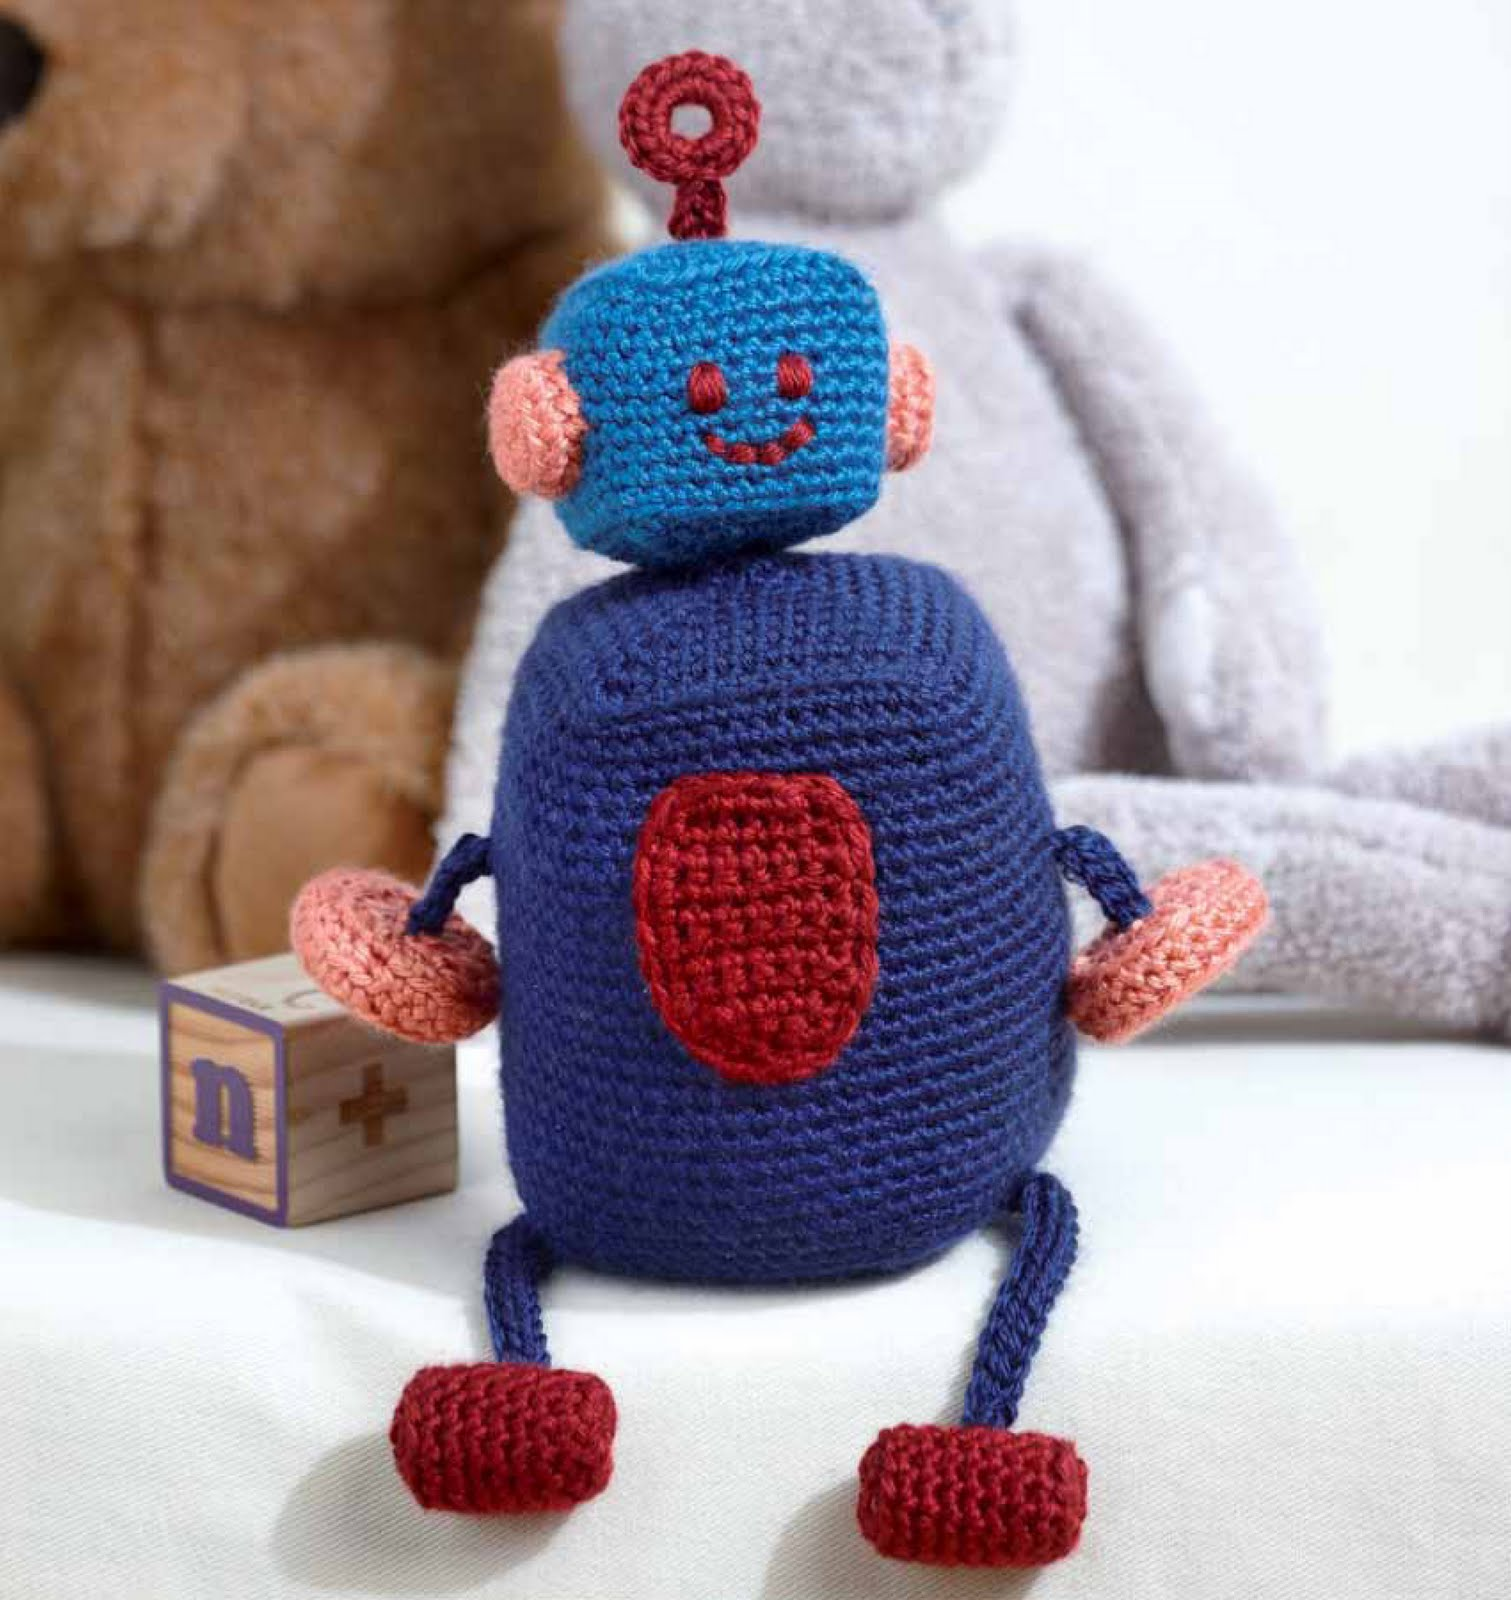 Crochet by faye countdown to baby blueprint robot burt countdown to baby blueprint robot burt malvernweather Images